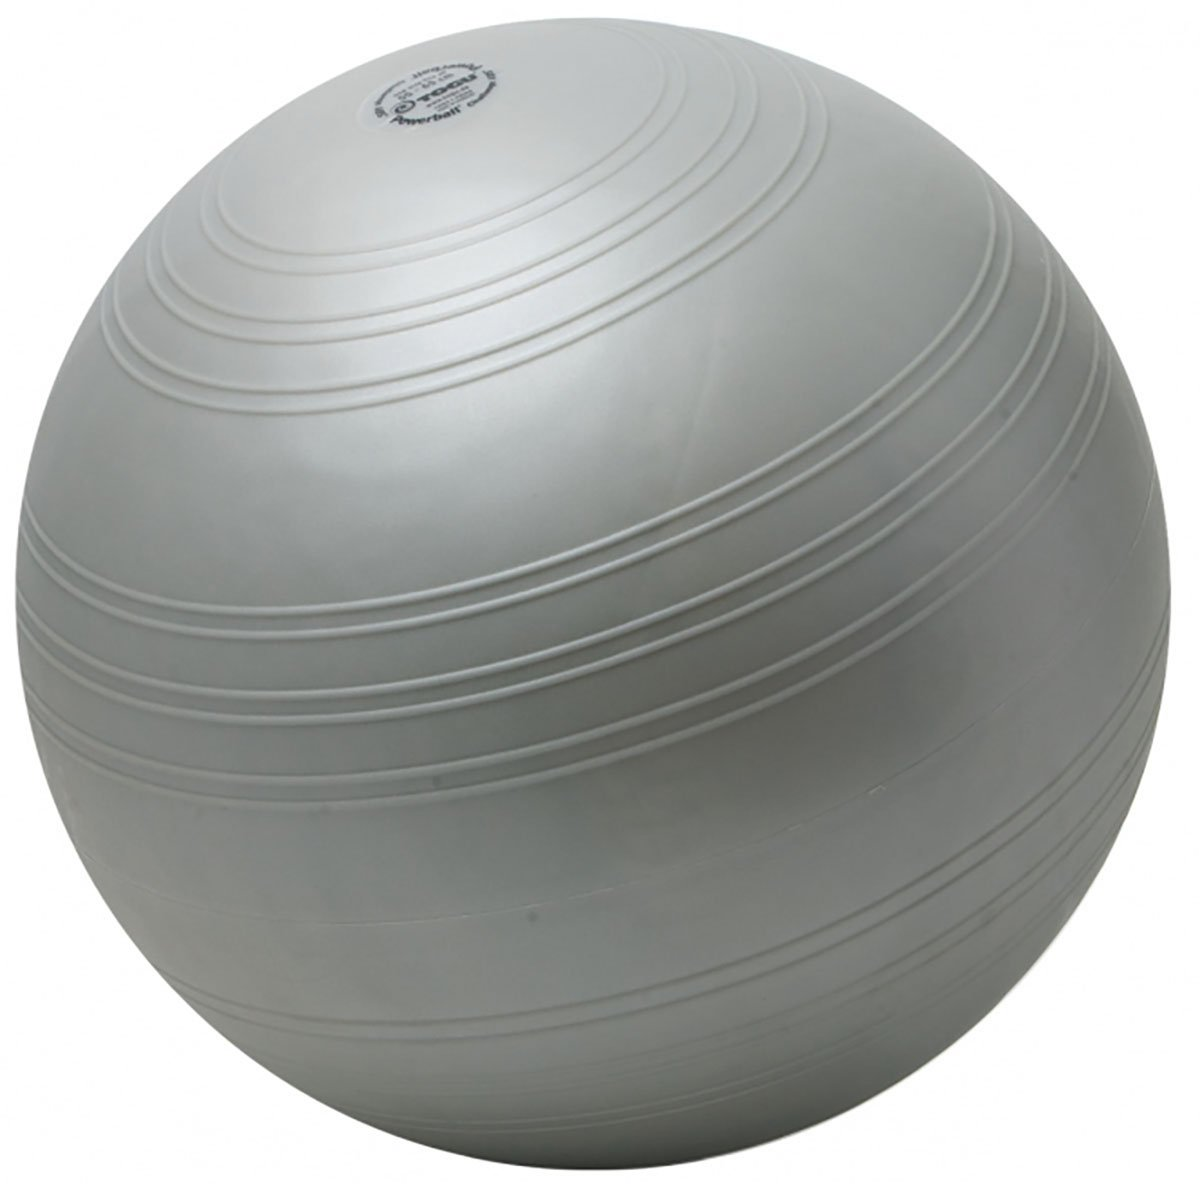 Togu ABS Challenge Extreme cm 55-65 67% OFF outlet of fixed price Balls